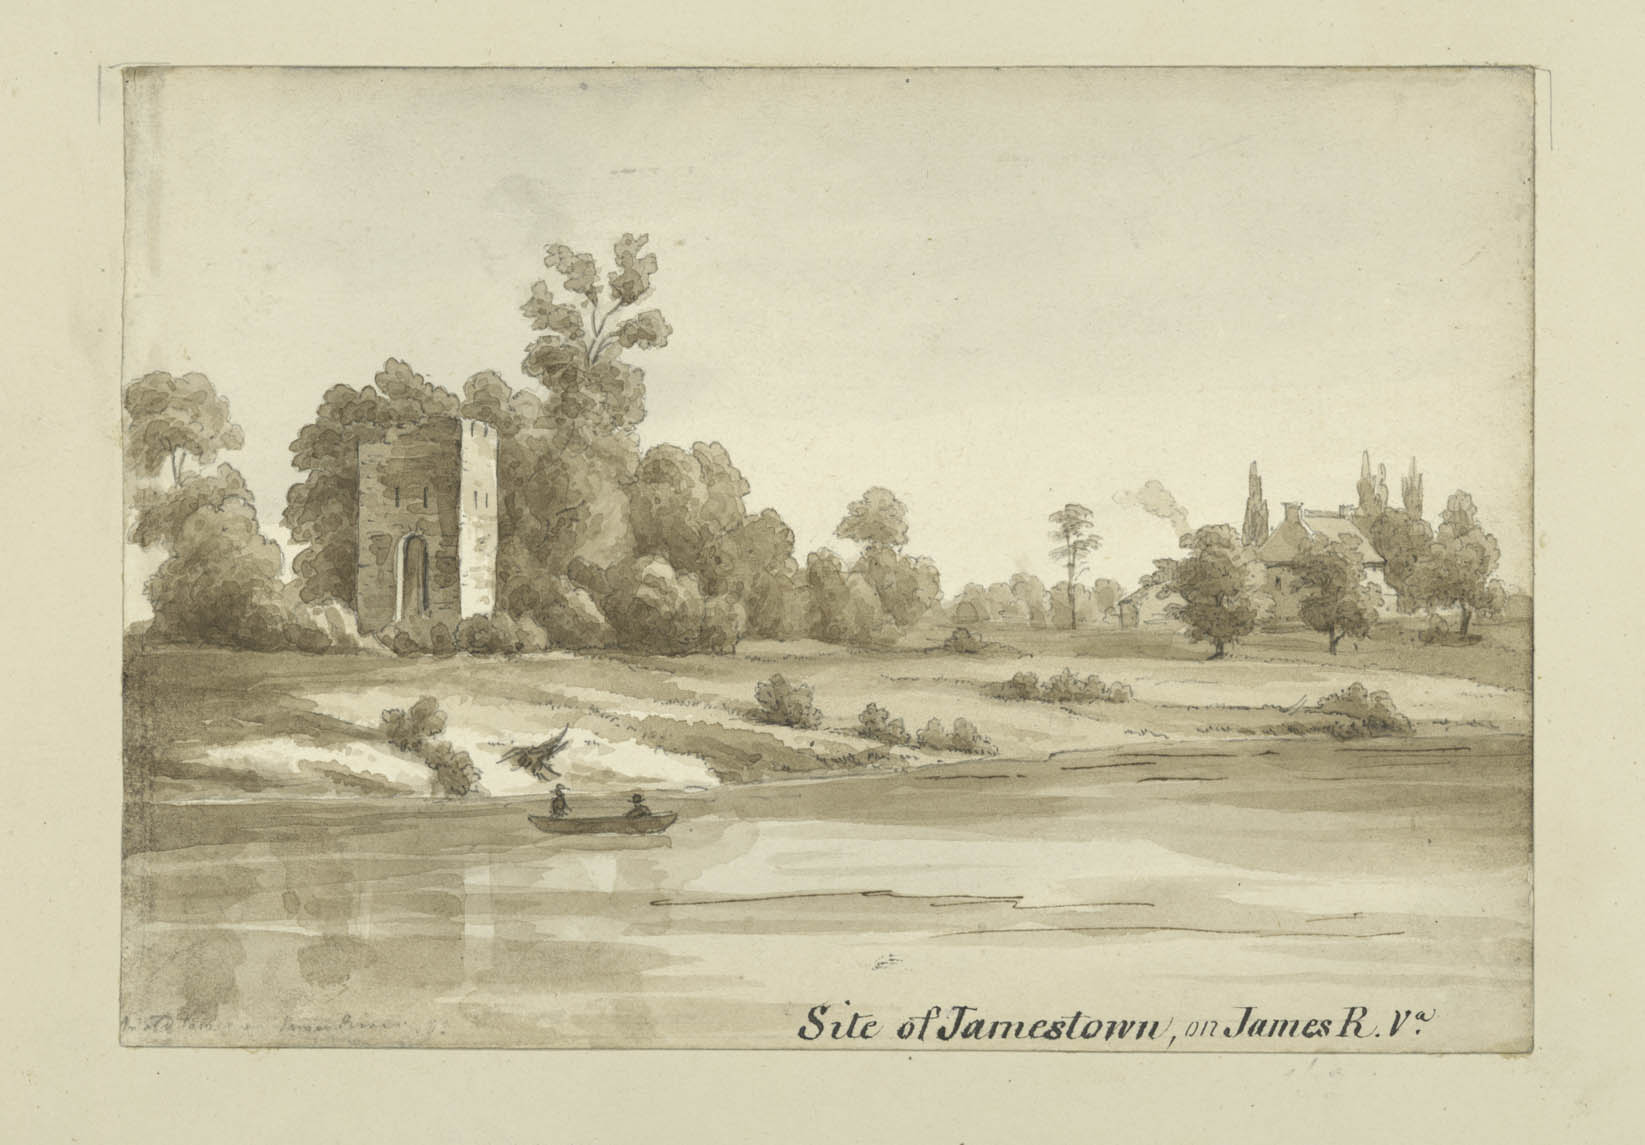 A black and white drawing of a river scene shows a canoe with two people on the river, and trees and grass lining the bank. There is a house in the distance hidden by trees, and a small stone tower closer. Text reads